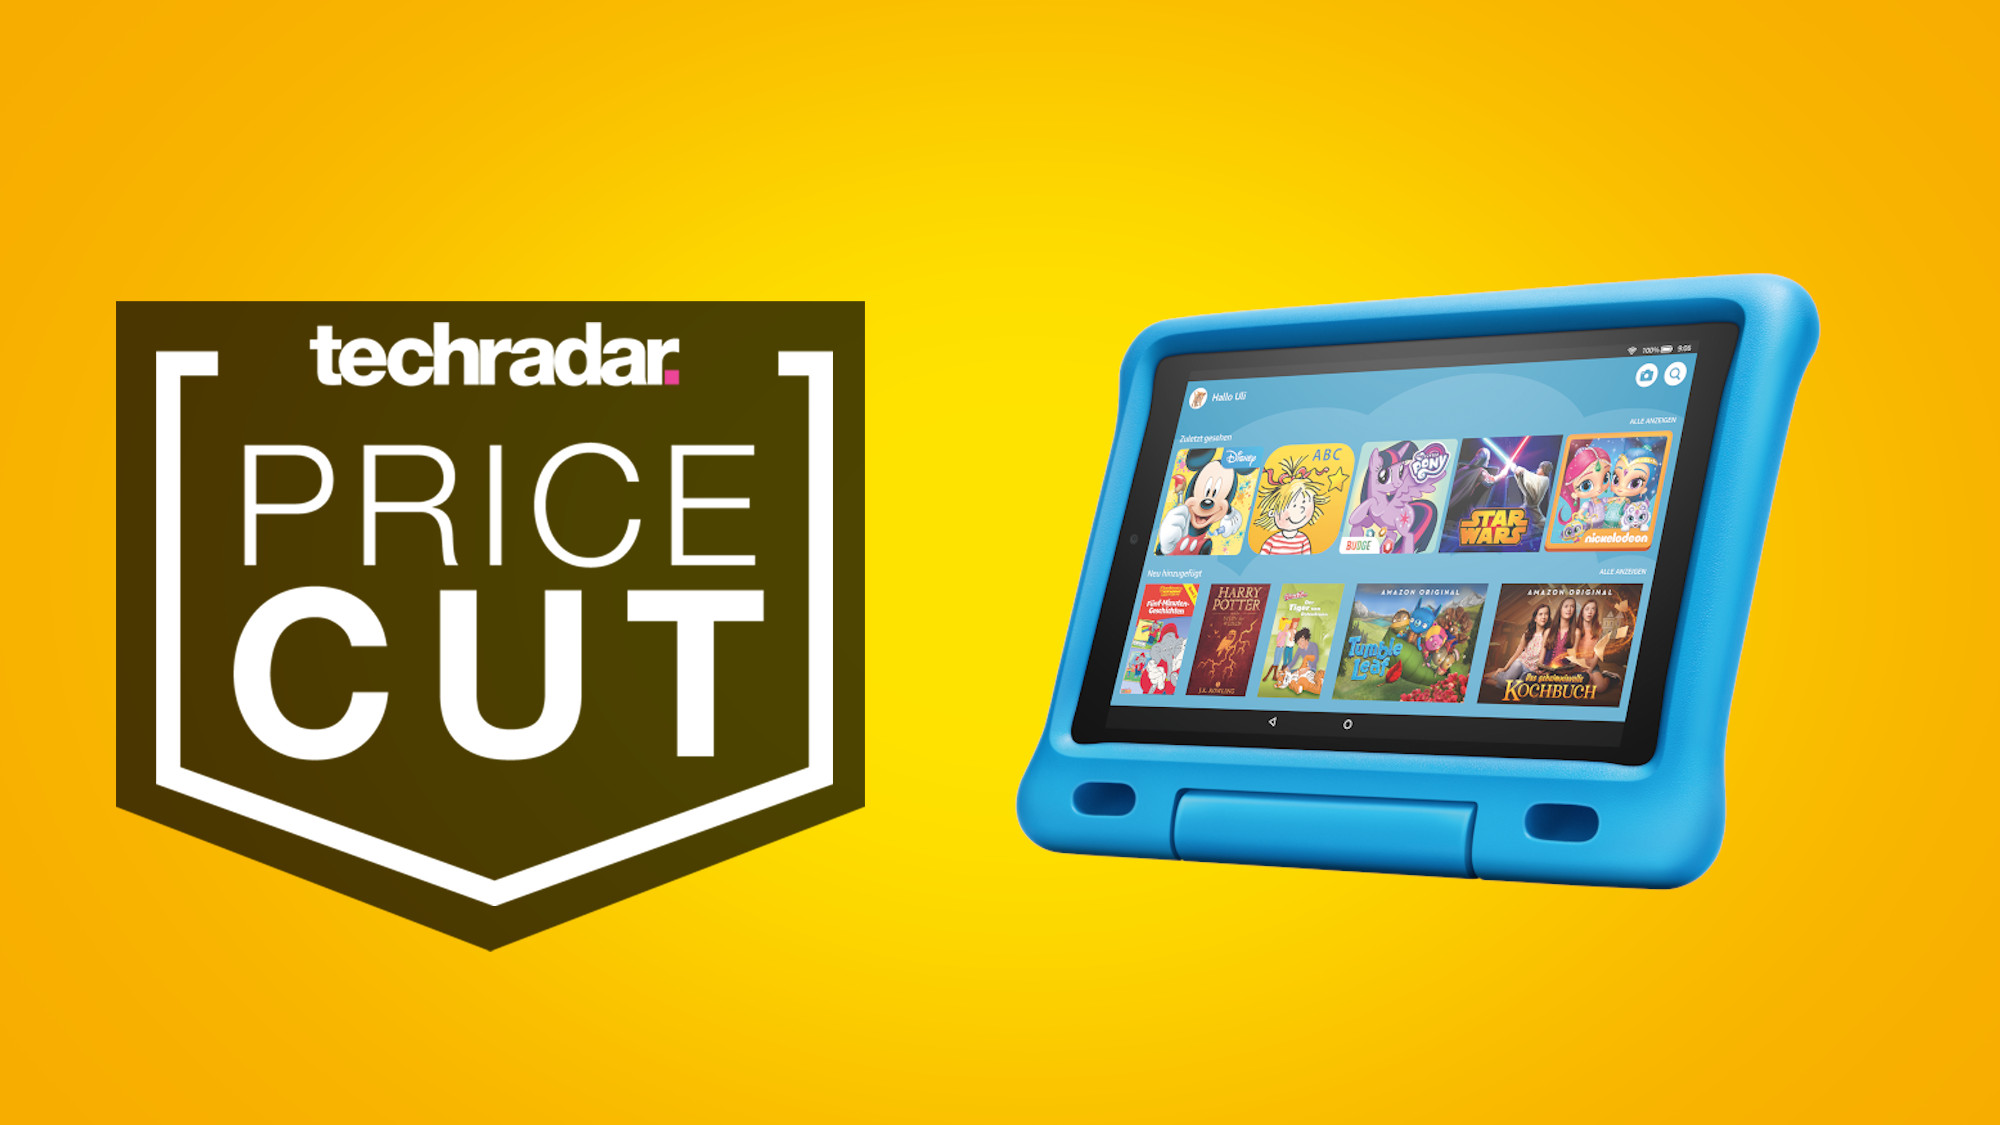 You can save up to 35% on Amazon Fire Kids Edition tablets this week